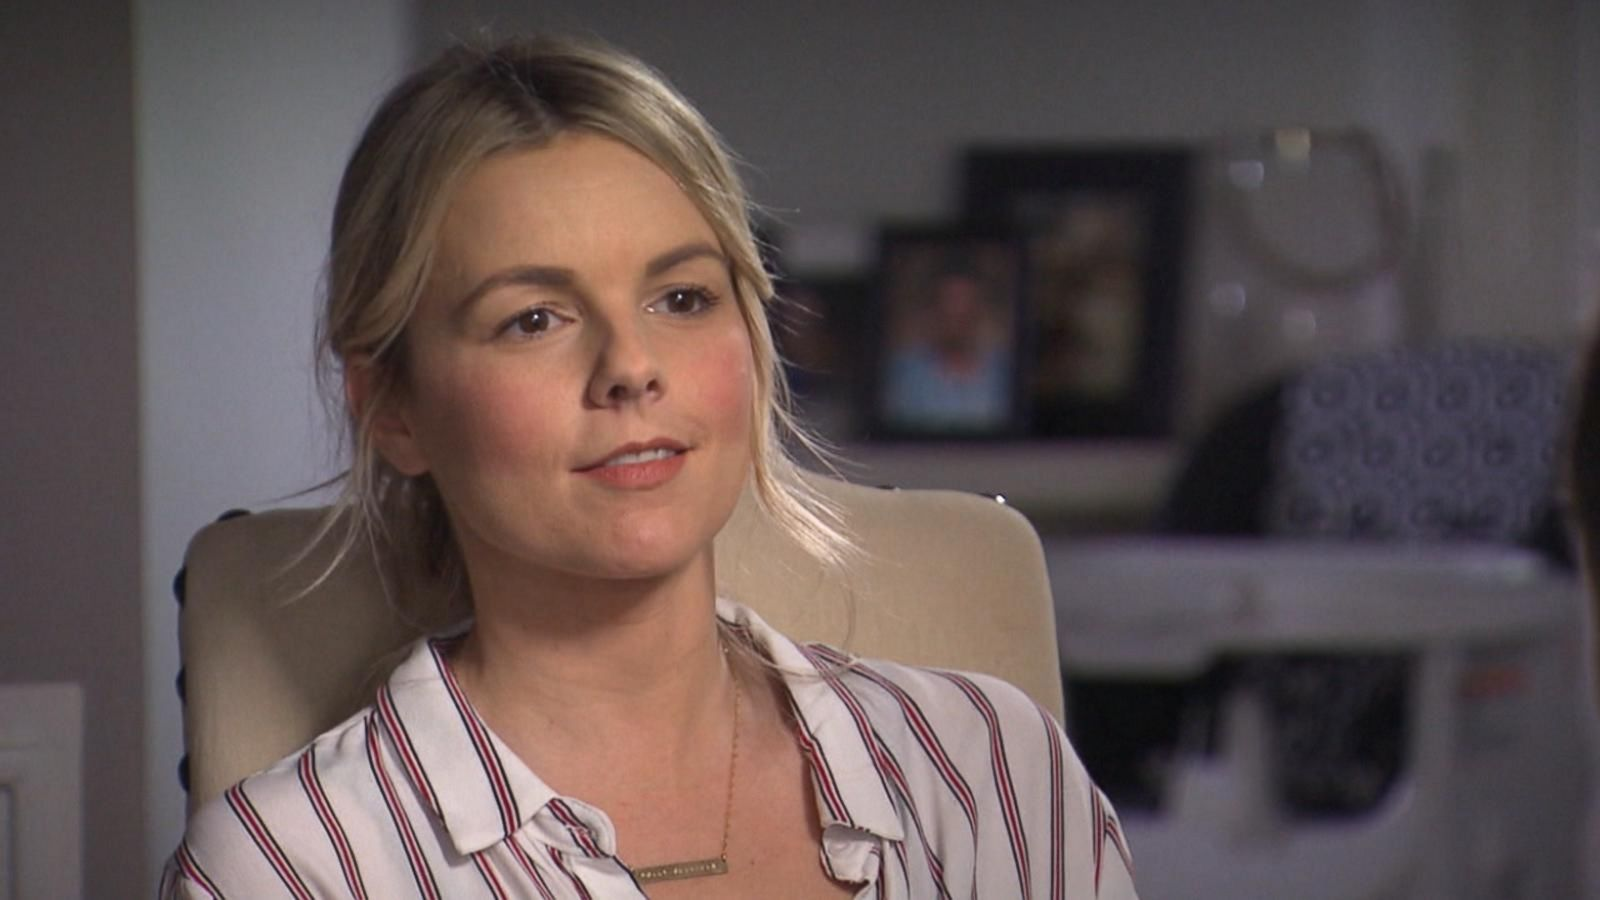 VIDEO: Ali Fedotowsky on Life After 'The Bachelorette'